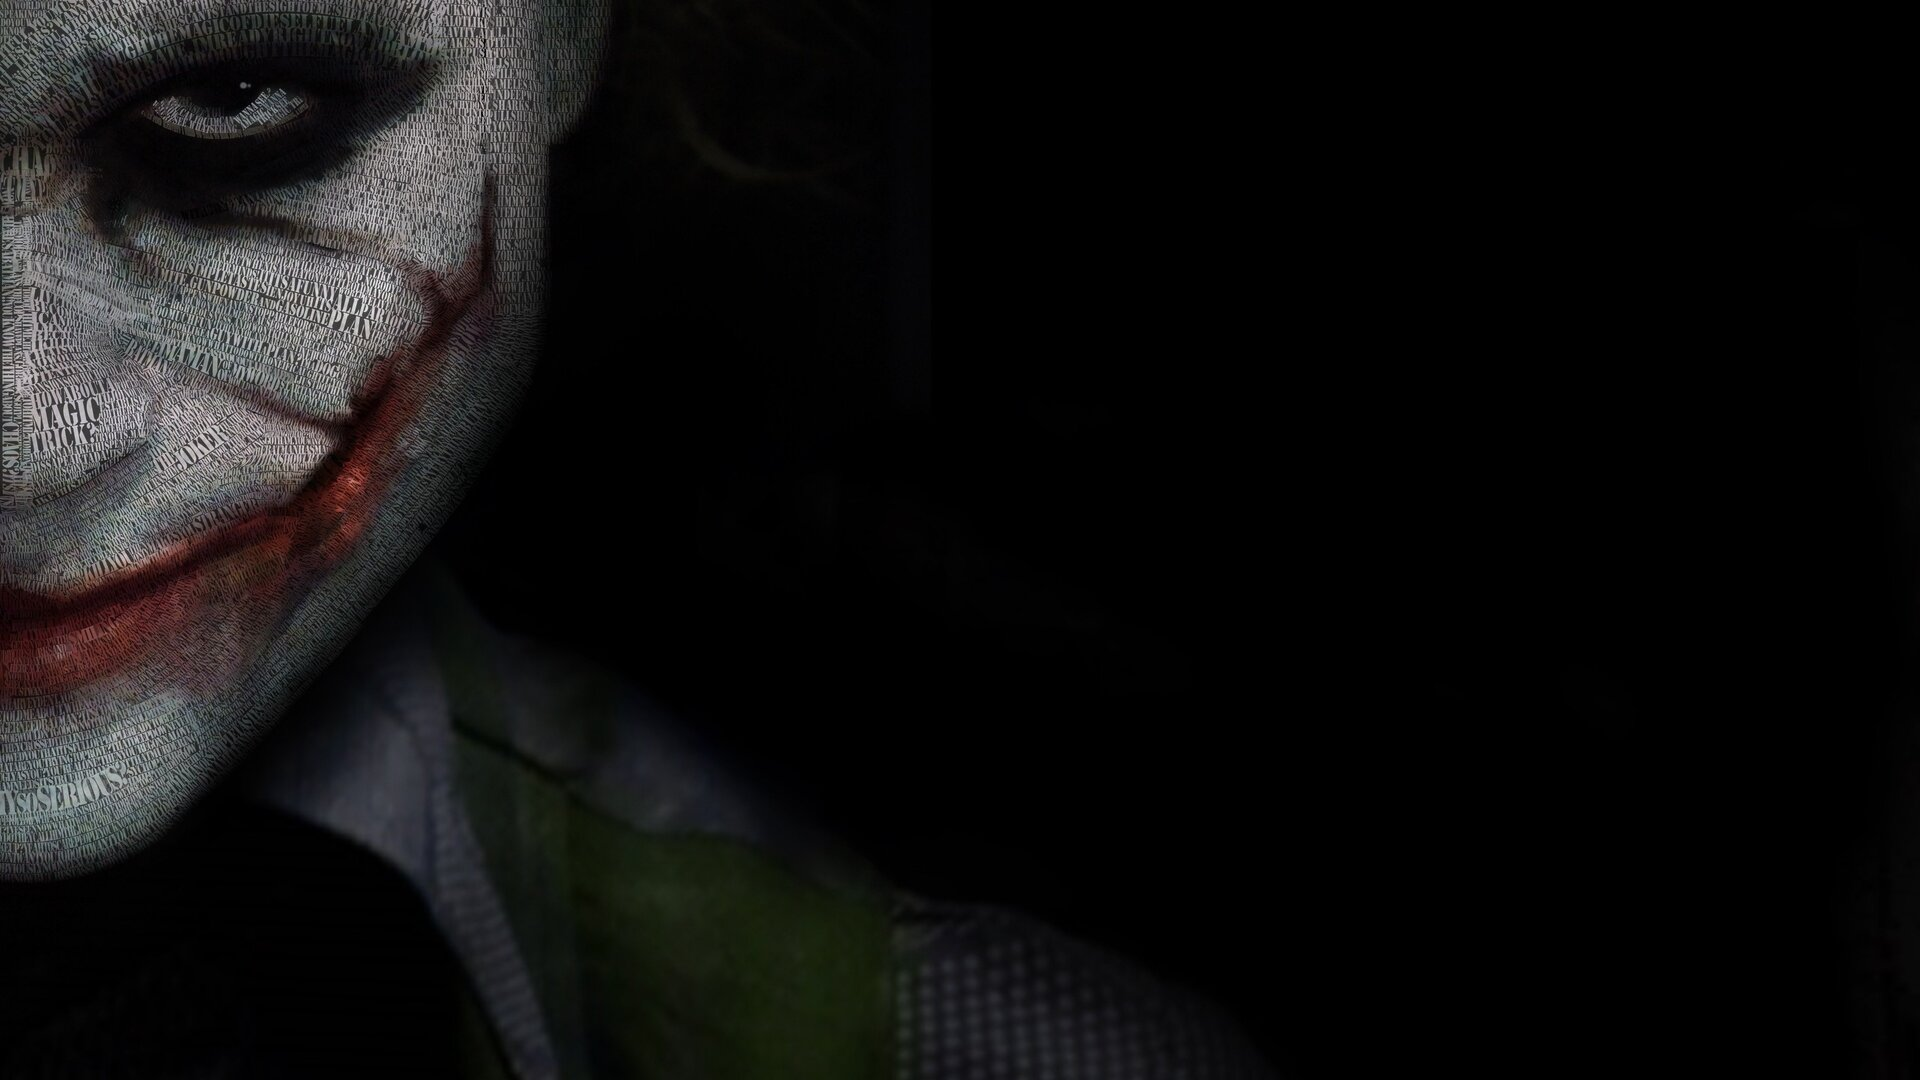 1920x1080 4k Joker Laptop Full Hd 1080p Hd 4k Wallpapers Images